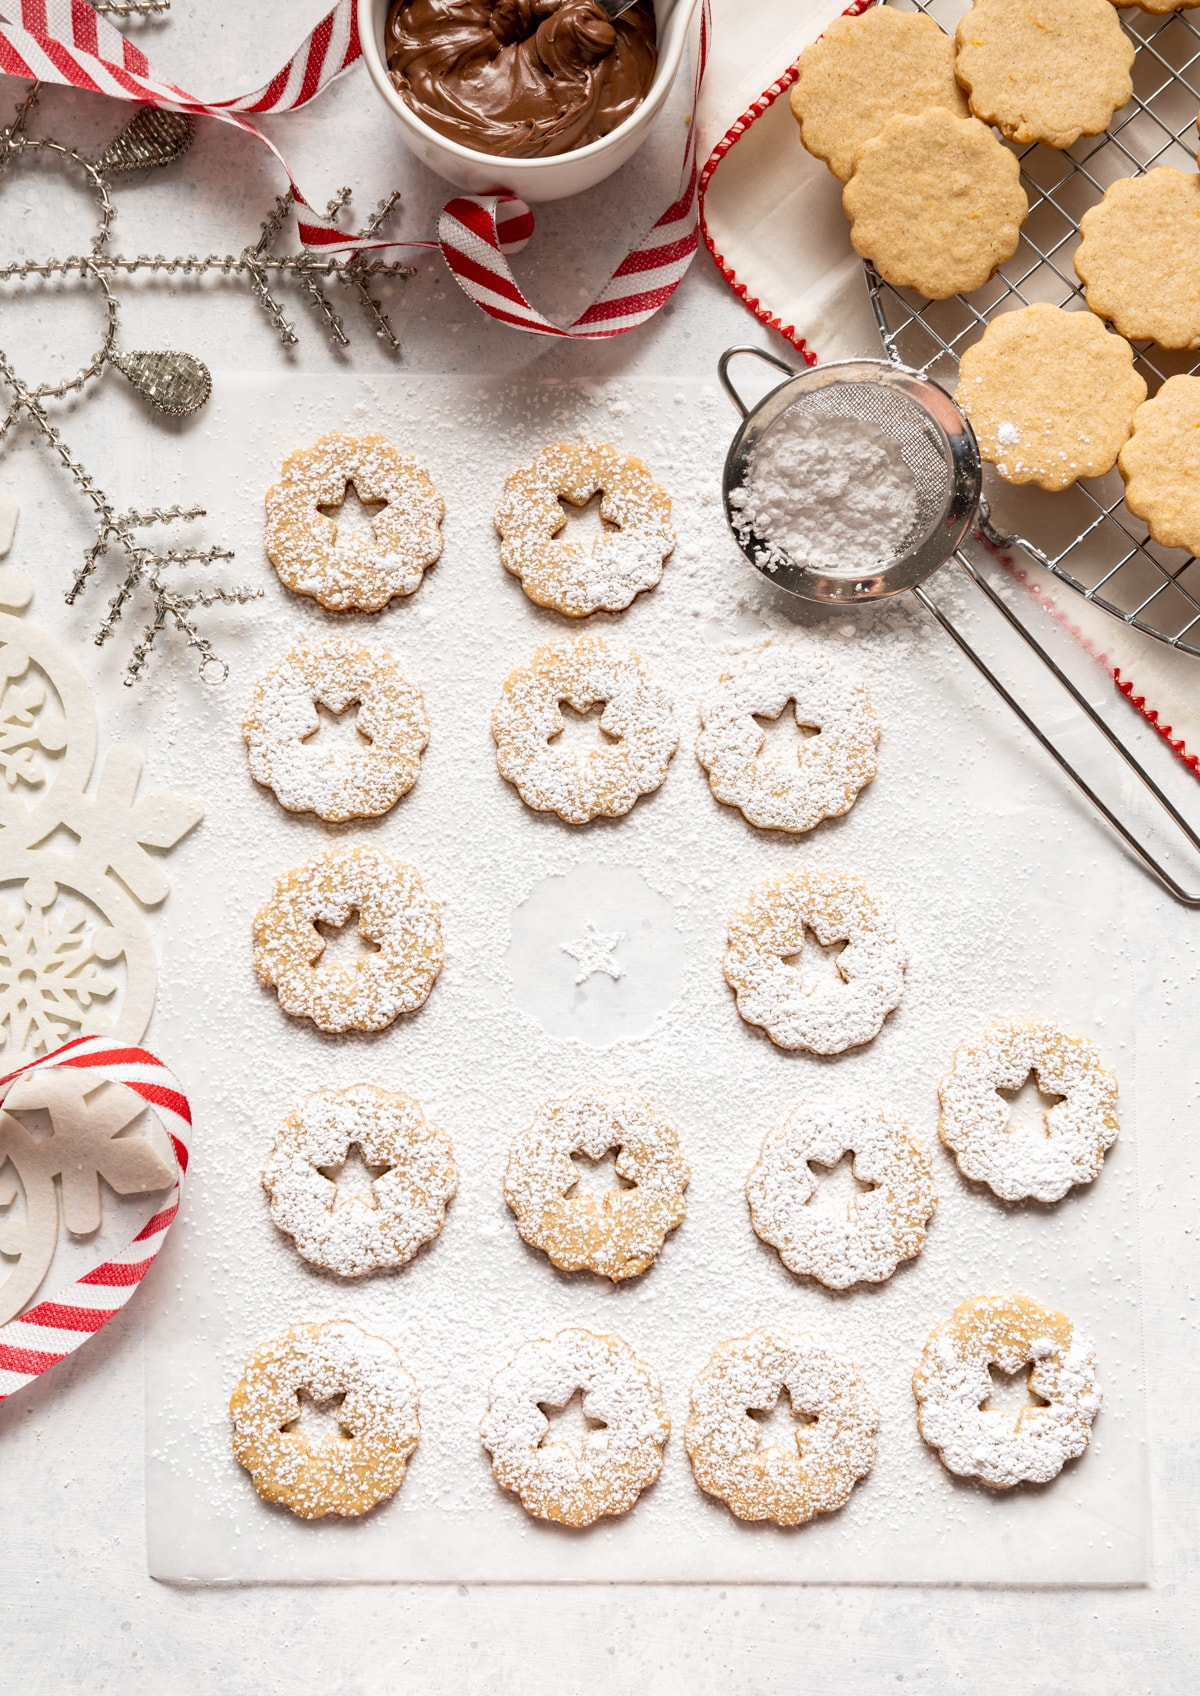 cookies with stars cut out of middle dusted with powdered sugar